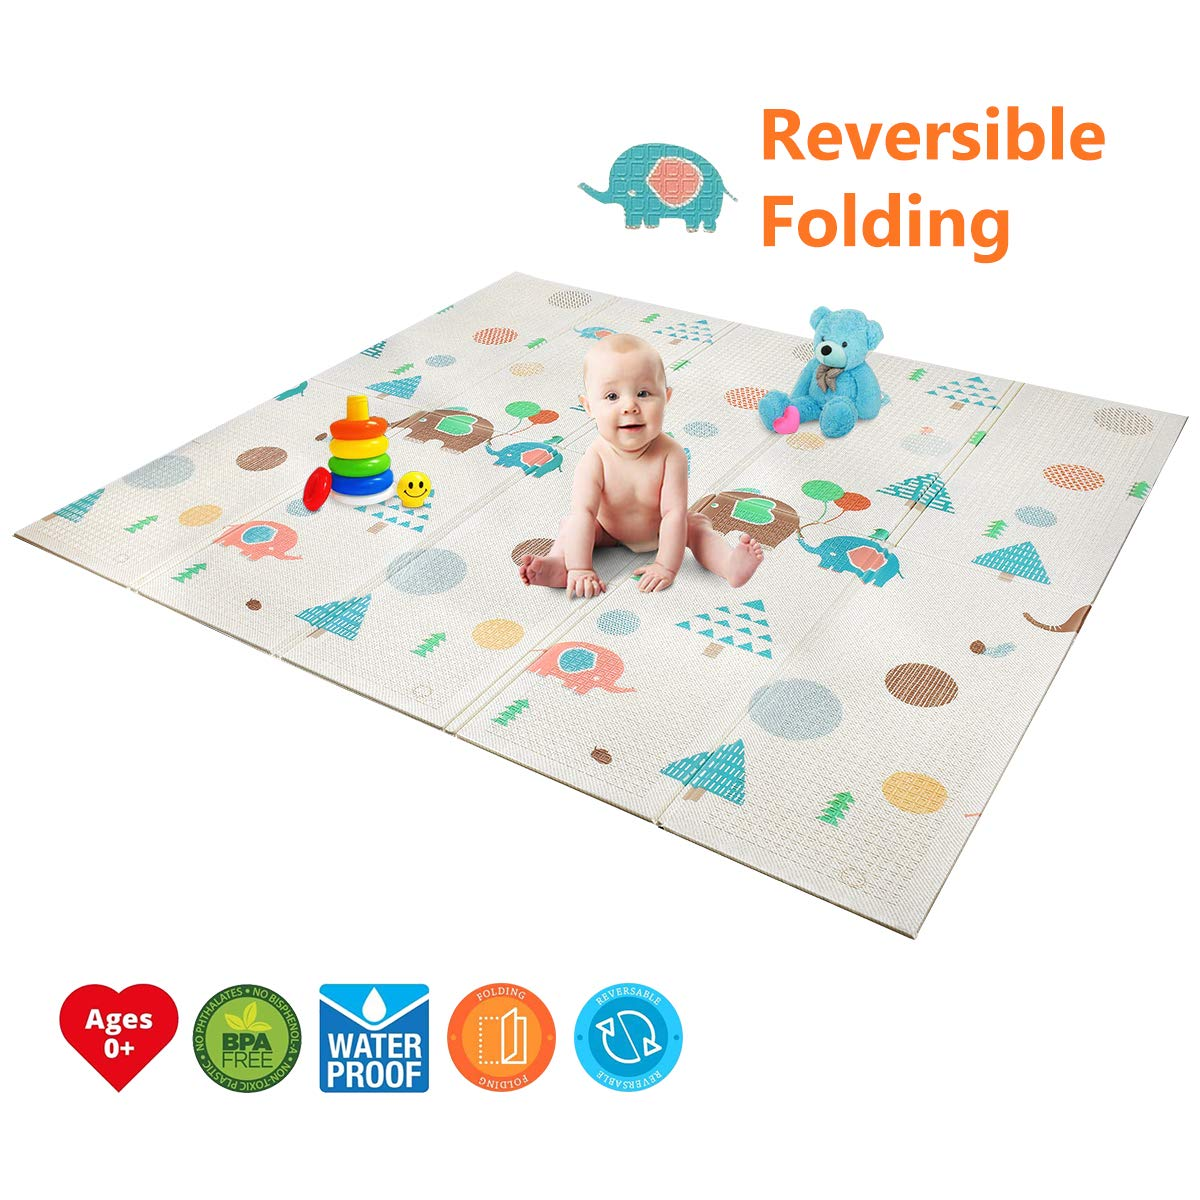 "Baby Play Mat | BPA Free Non-Toxic Foam Folding Baby Care Playmat 78.7"" x 70.8 0.4"" Thick Extra Large Reversible Crawling Mat Portable Toddlers Kids Waterproof Non-Slip Outdoor (Love of Elphant) Forstart ML-A02PAN-PM05"